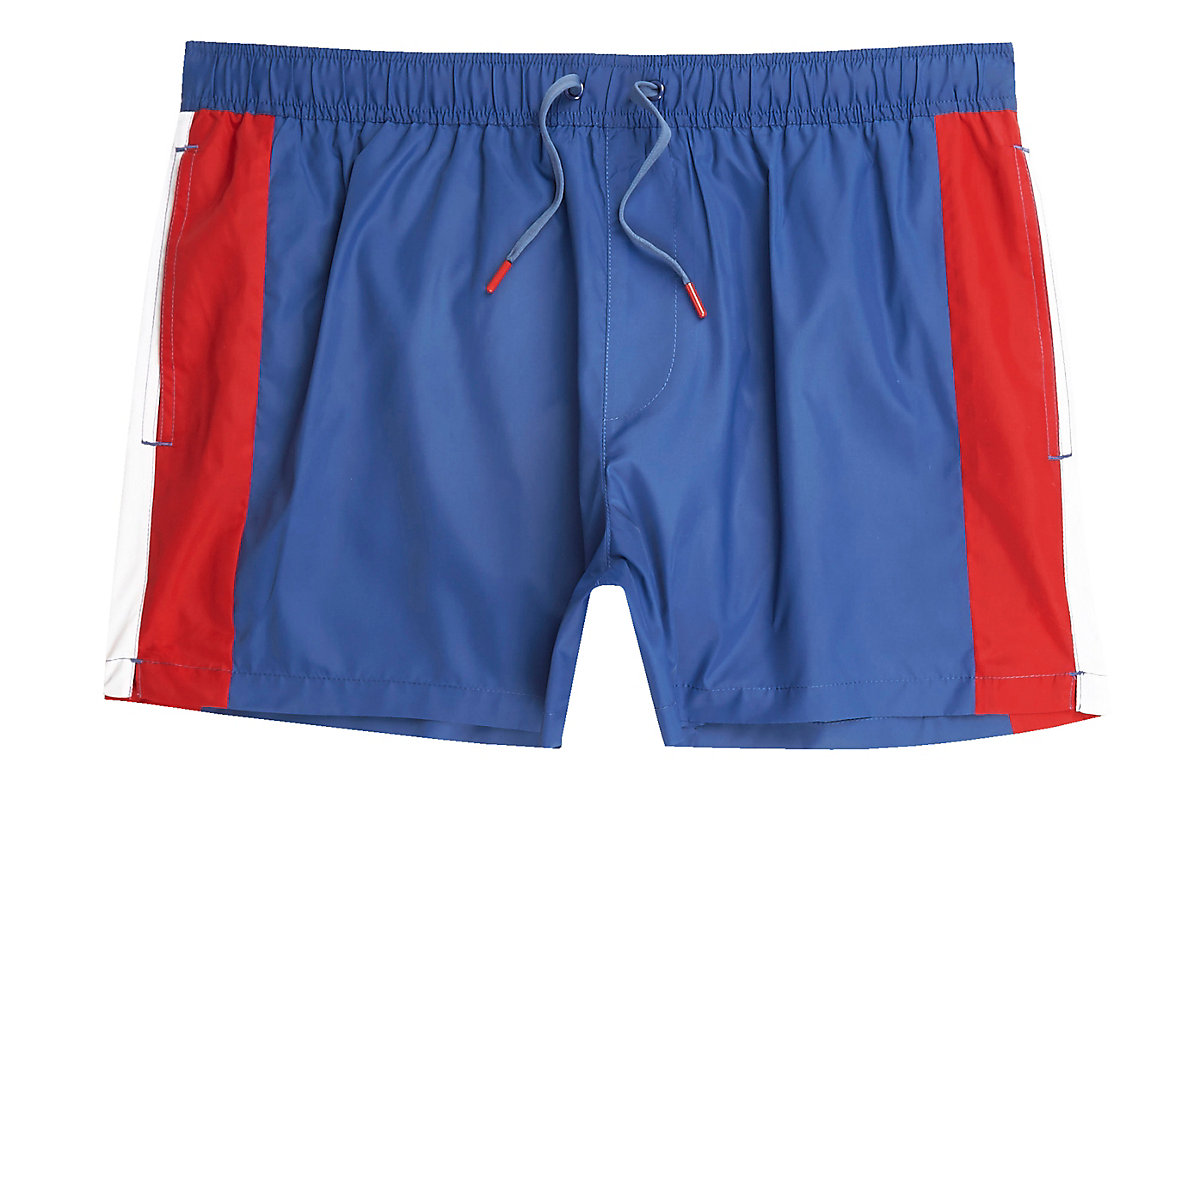 Blue and red block swim trunks